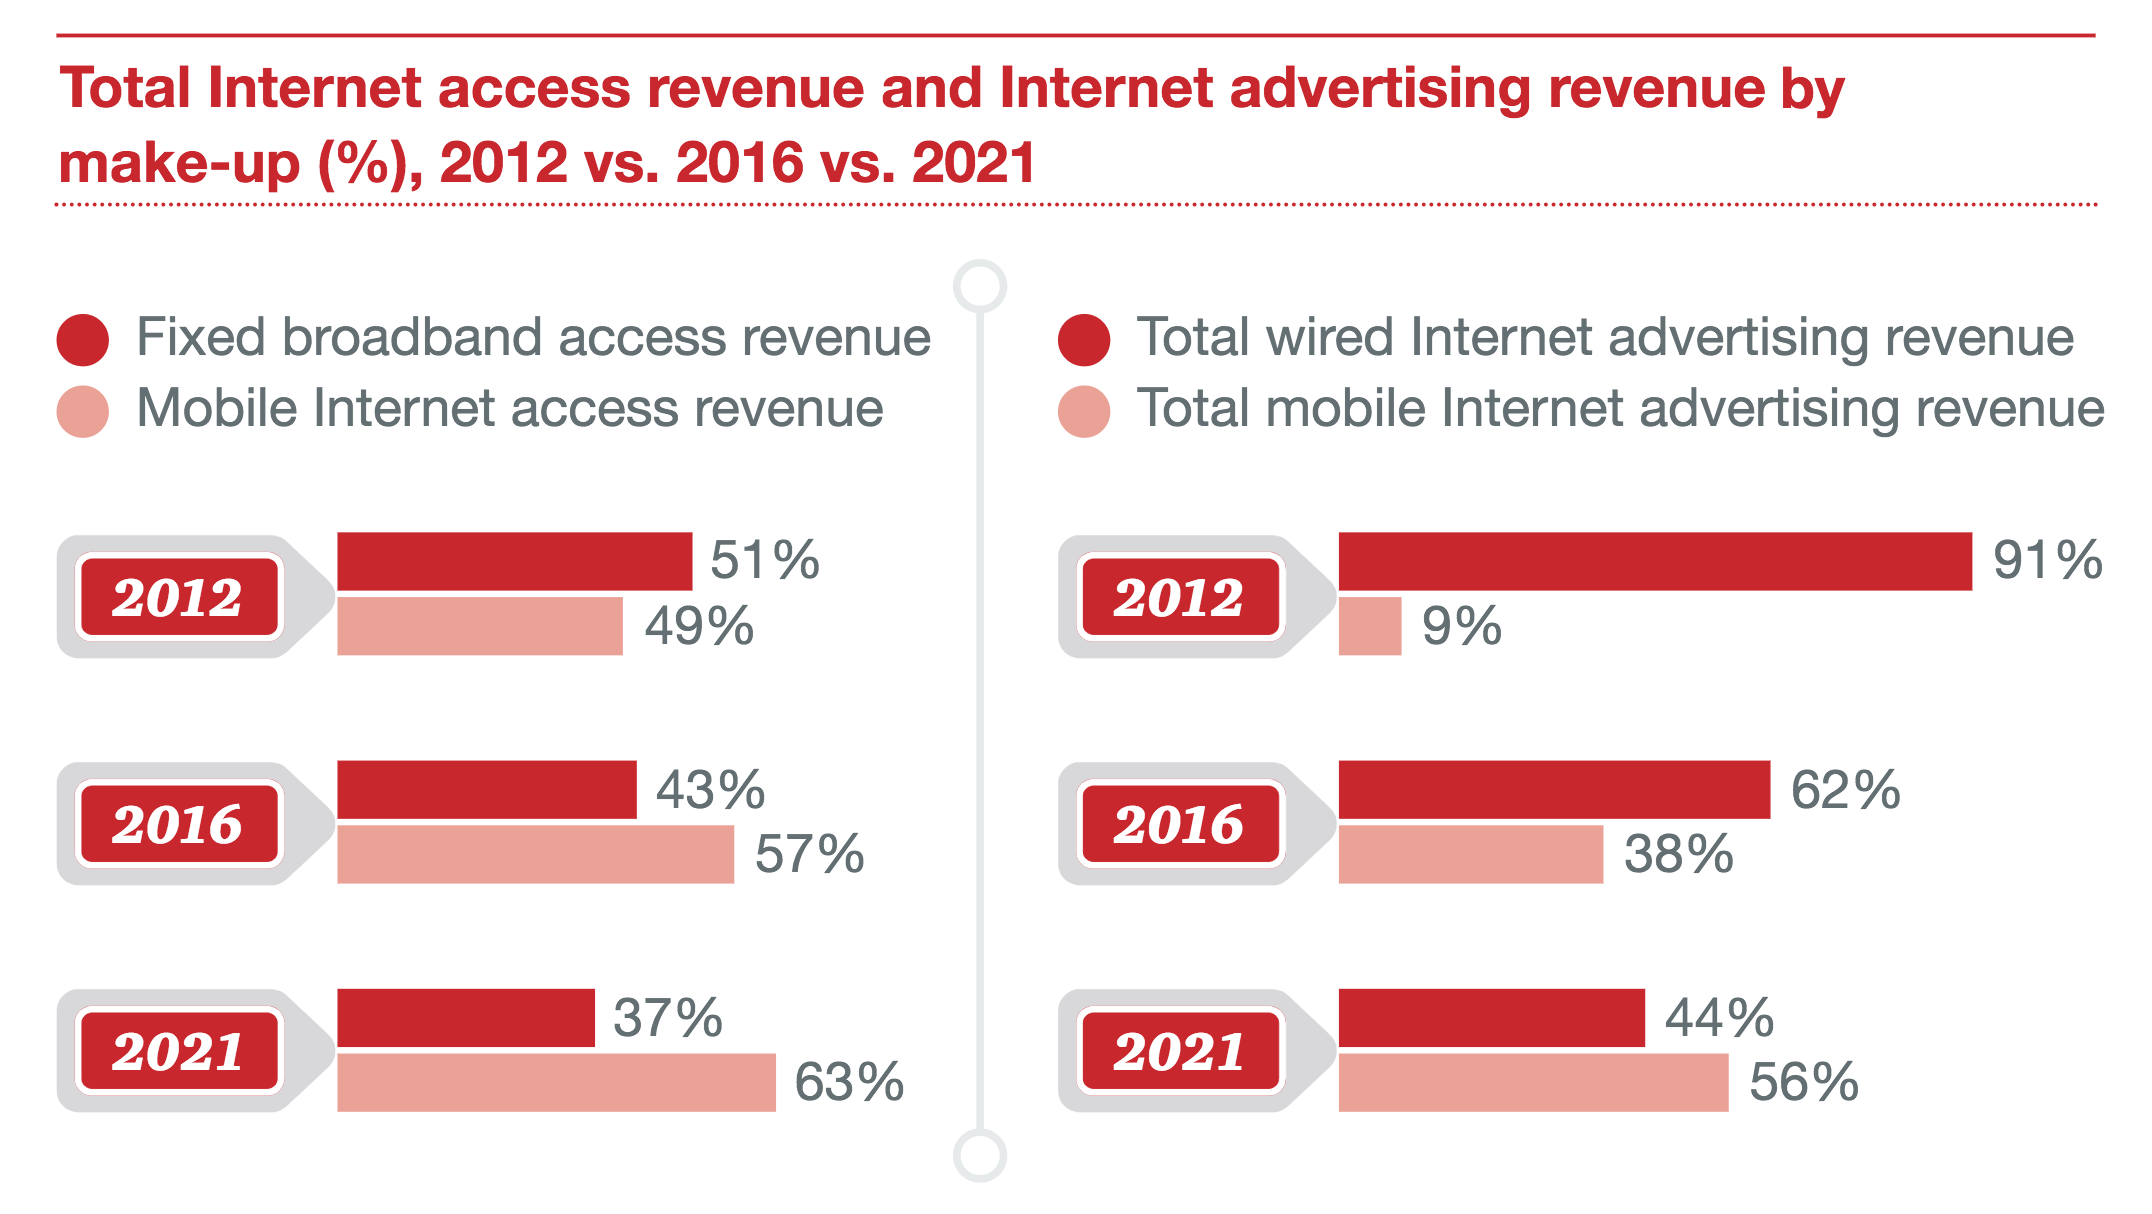 Total Internet Access Revenue and Internet Advertising Revenue by Make-Up